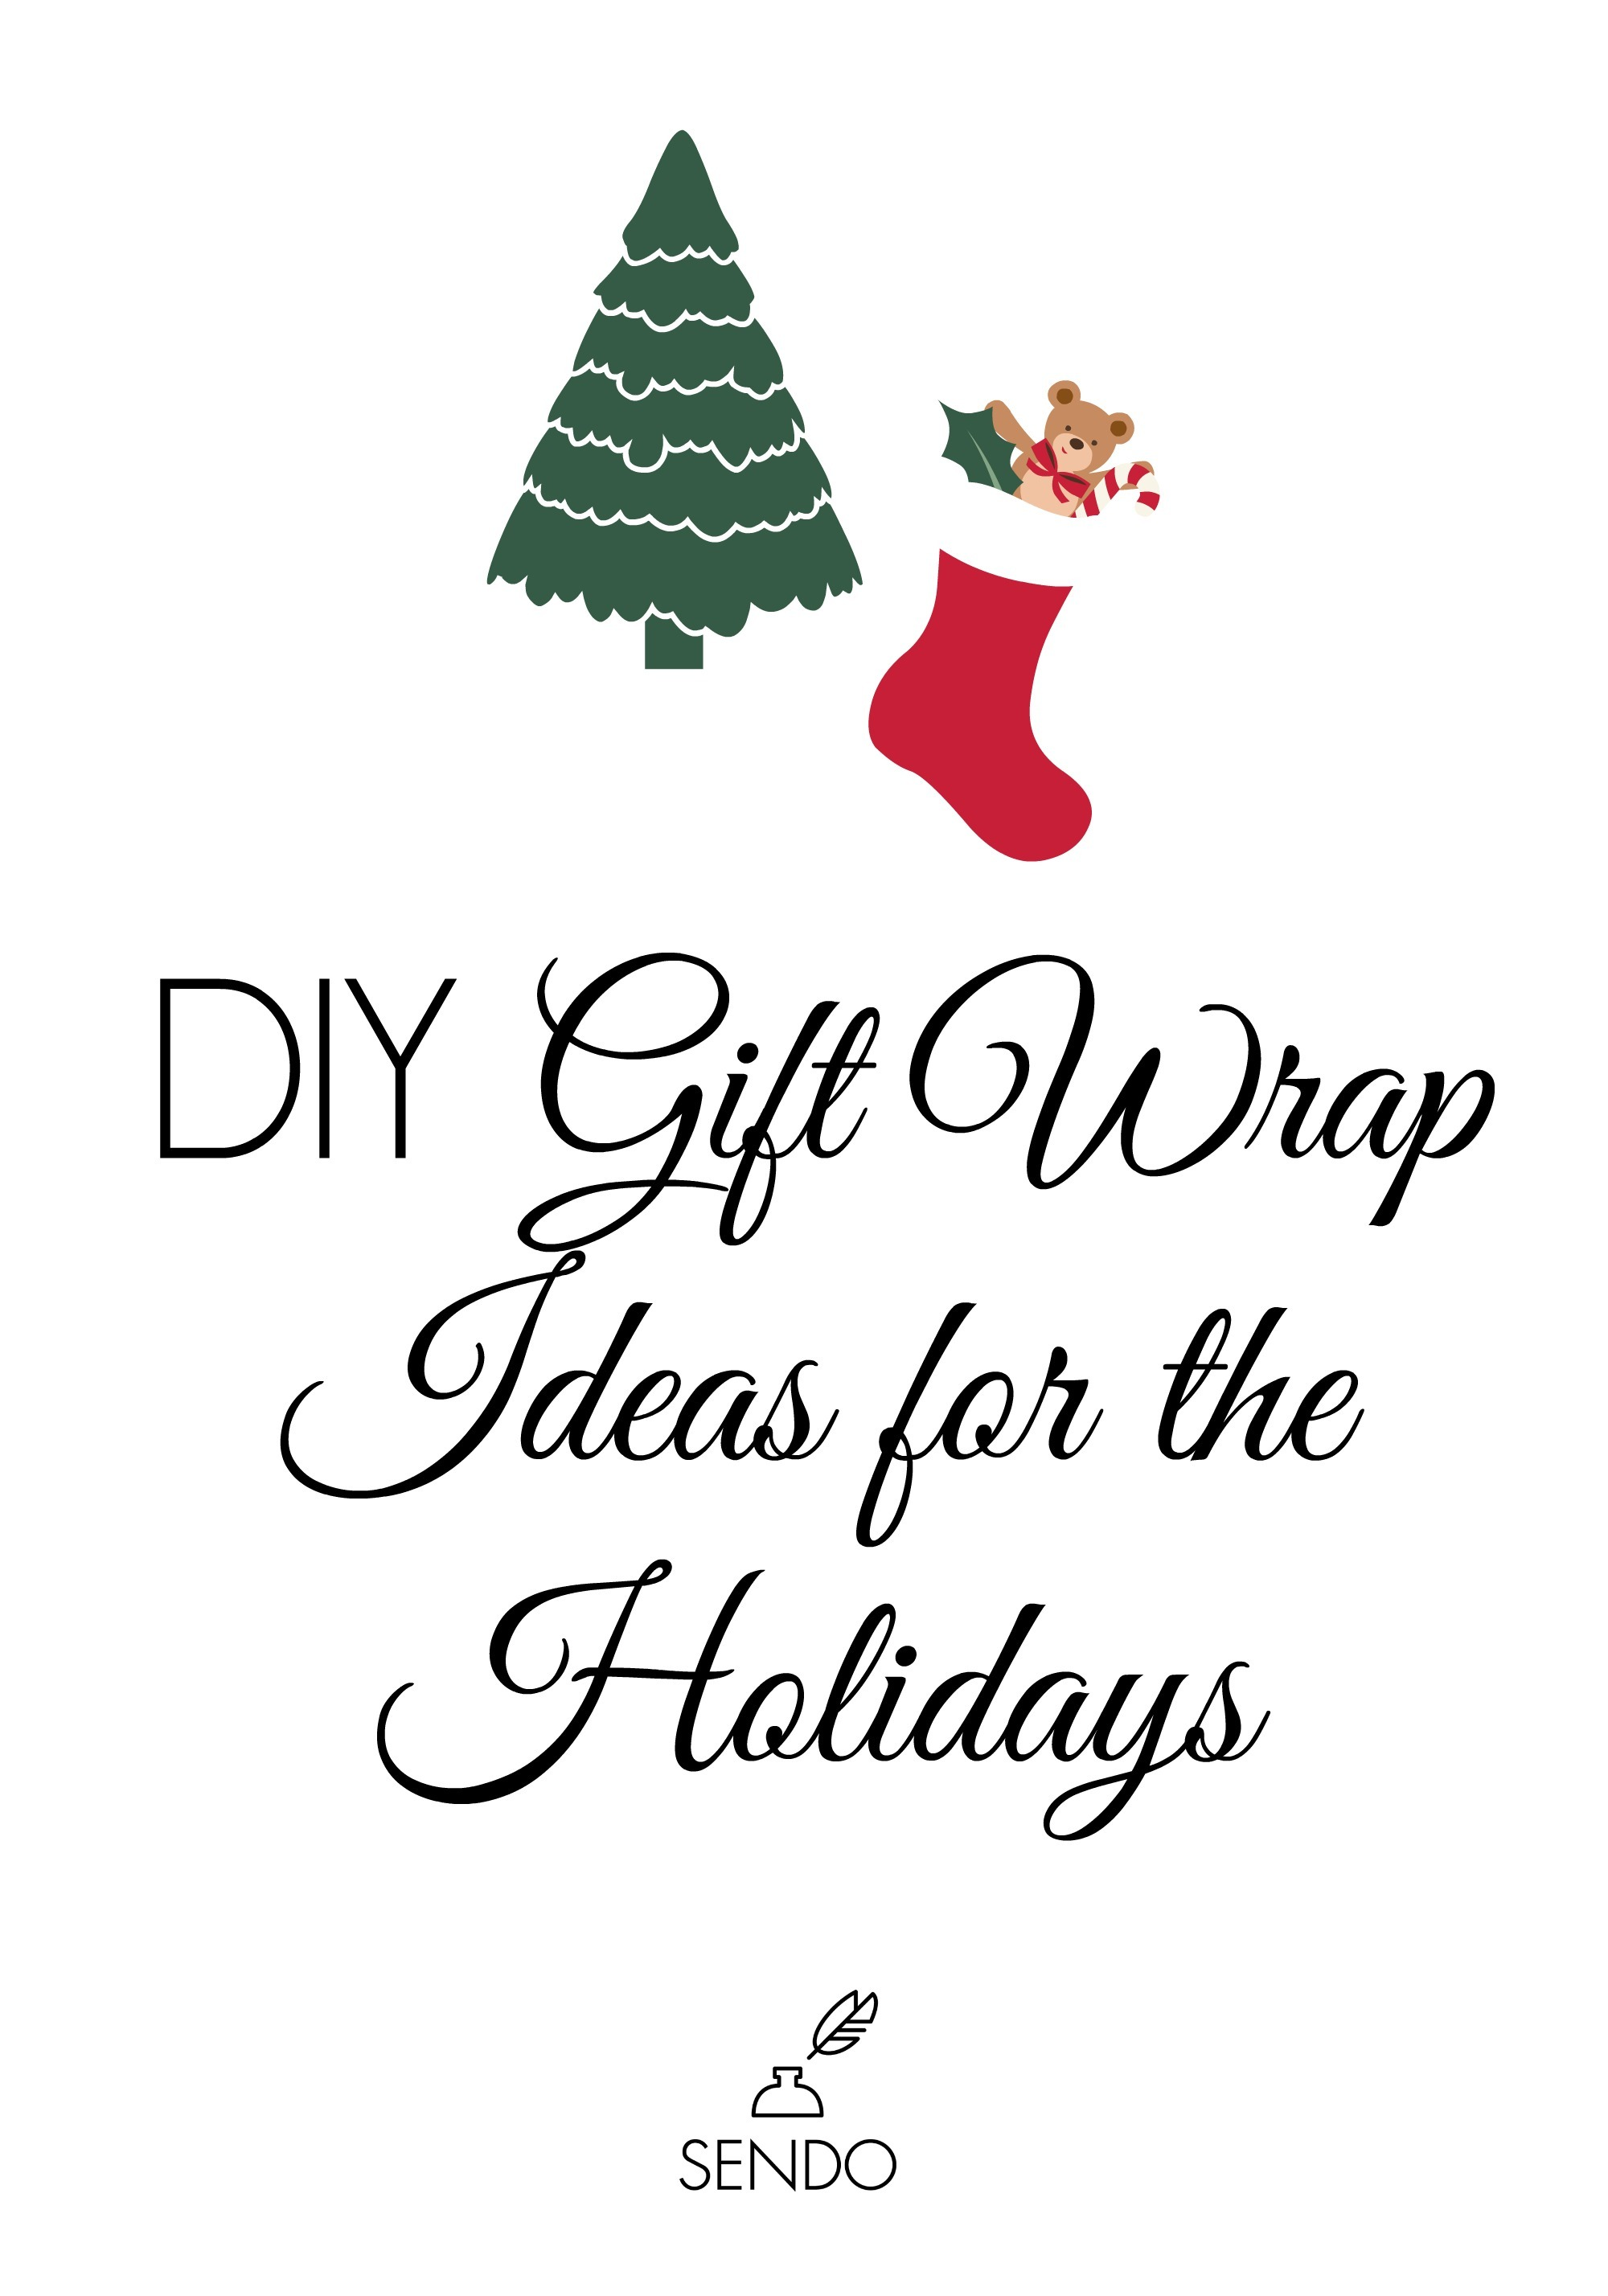 DIY Gift Wrap Ideas For The Holidays